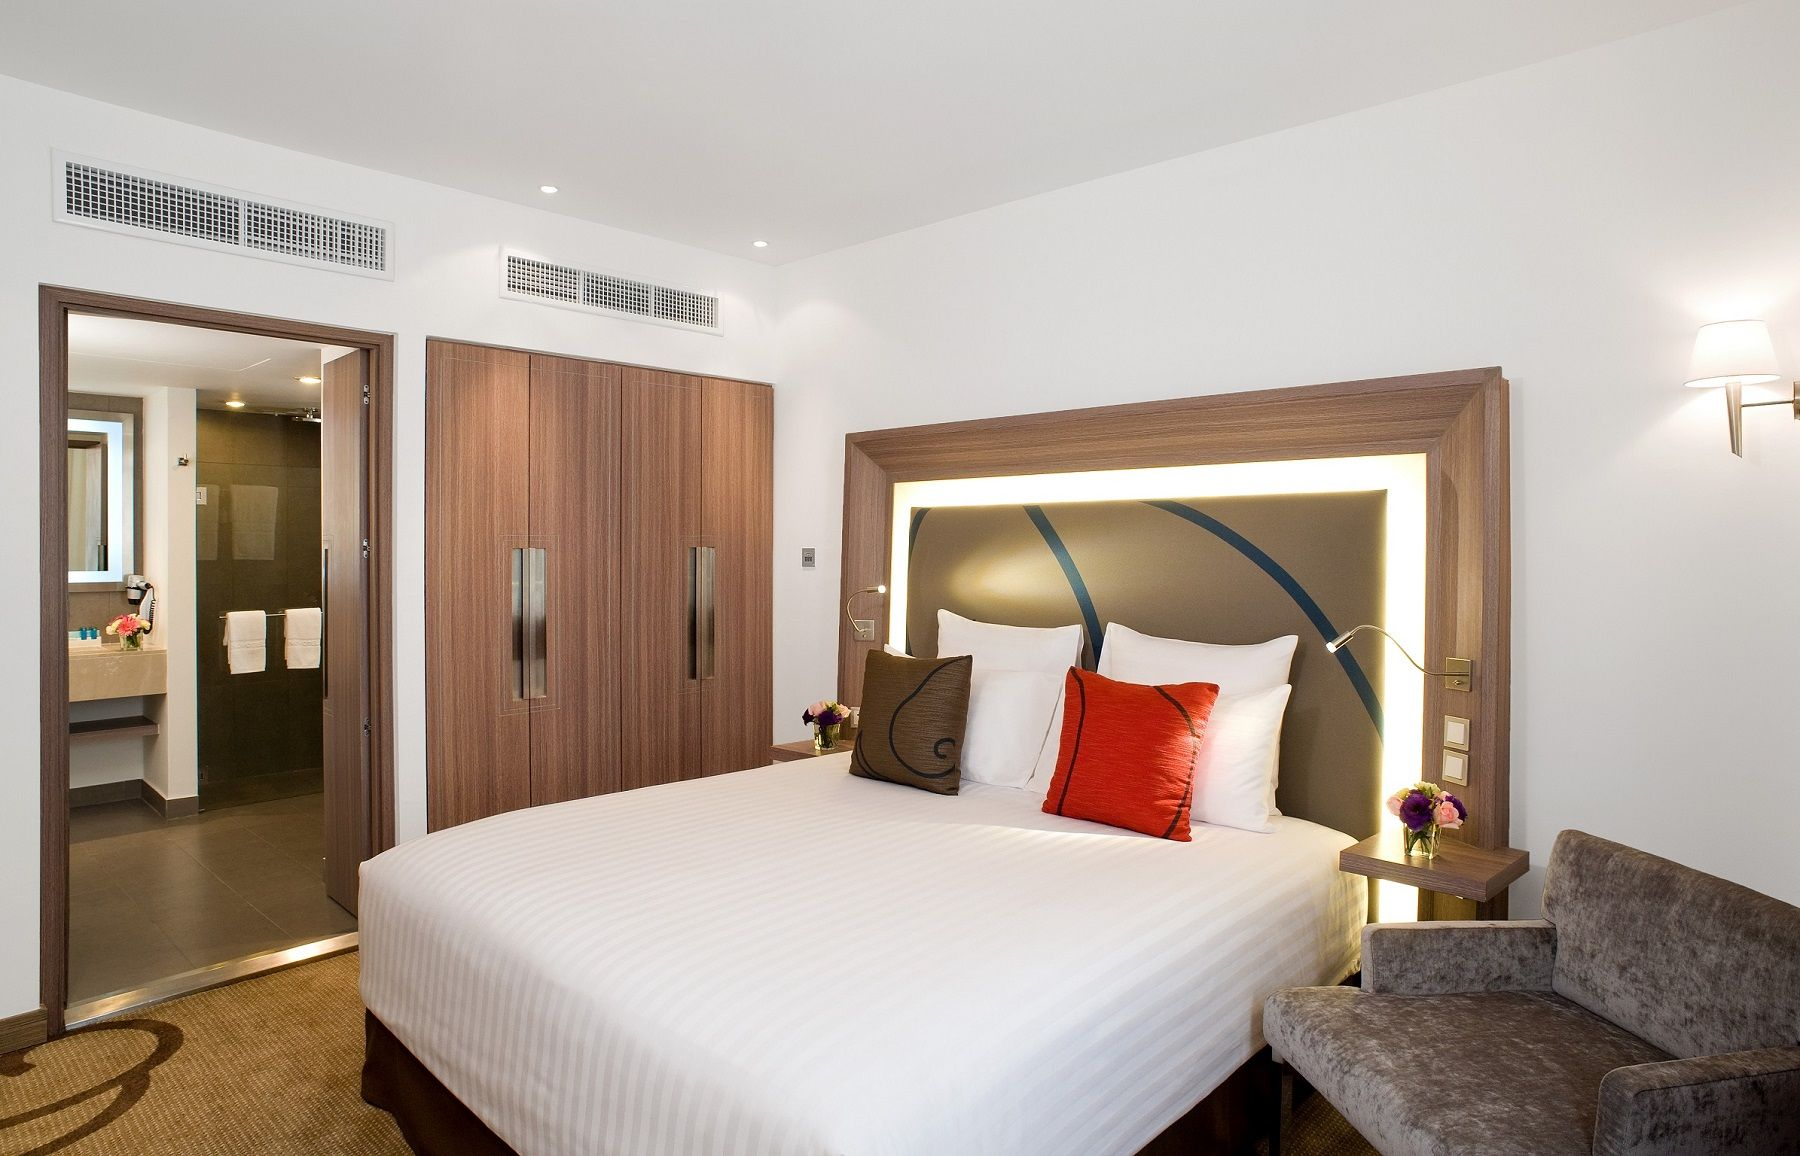 The Bangkok Hotel S 84 Square Metre Two Bedroom Suite Features Separate Living Dining And Sleeping Areas The Two Bedroom Suites Two Bedroom Contemporary Room